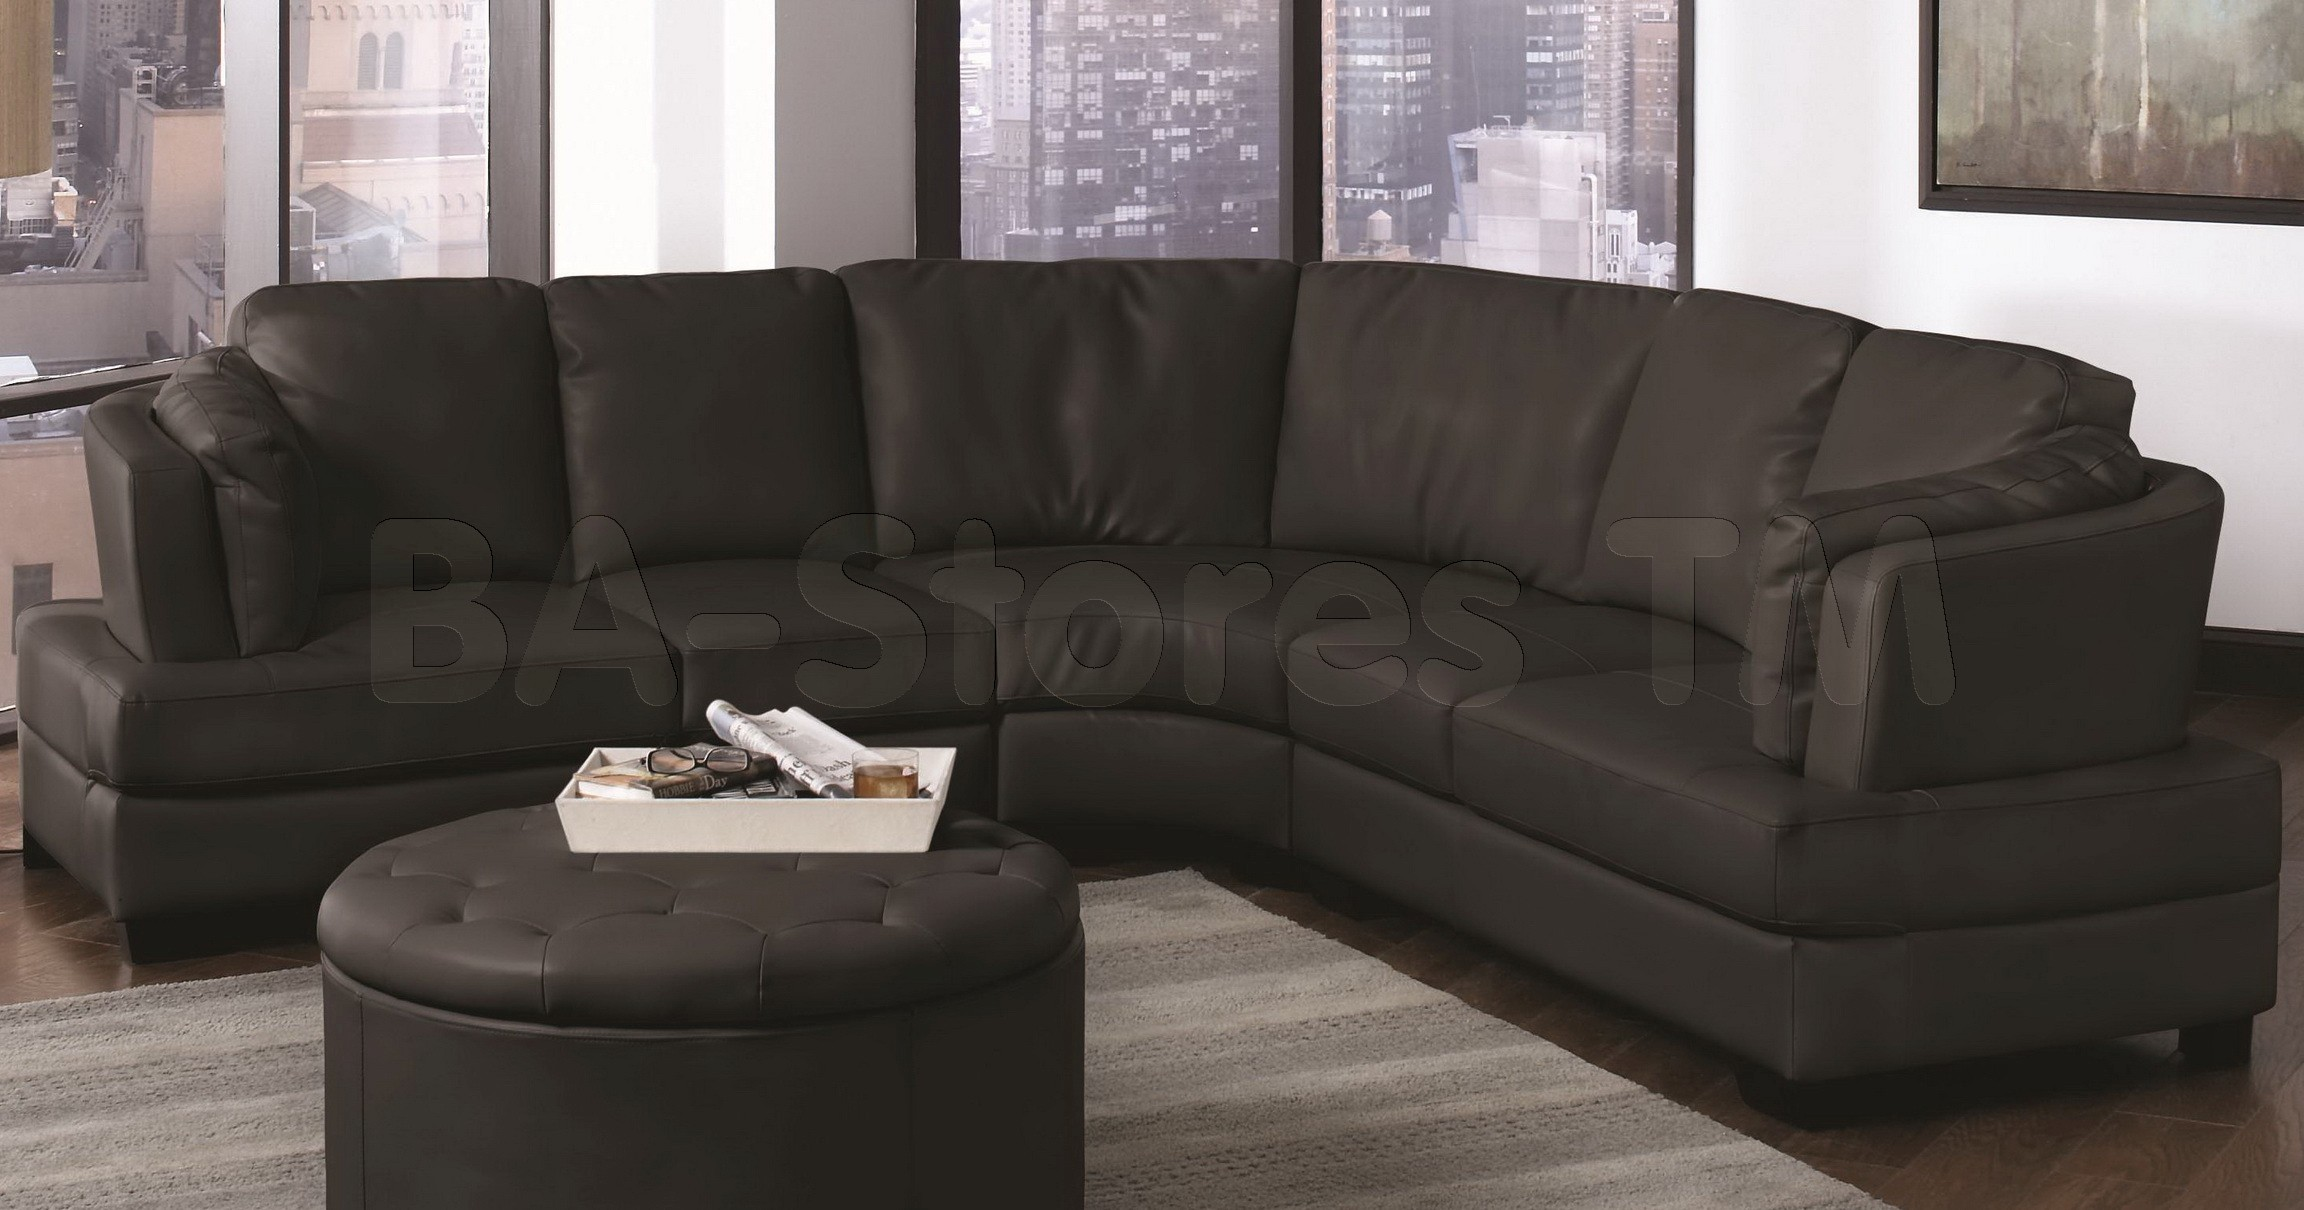 Circle Sectional sofa Latest Epic Circle Sectional sofa with Additional sofas and Couches Decoration